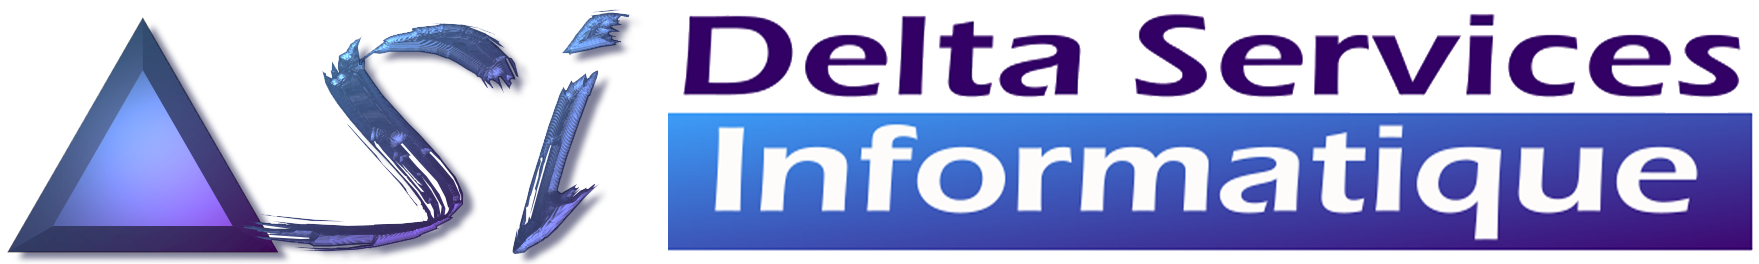 Delta Services Informatique